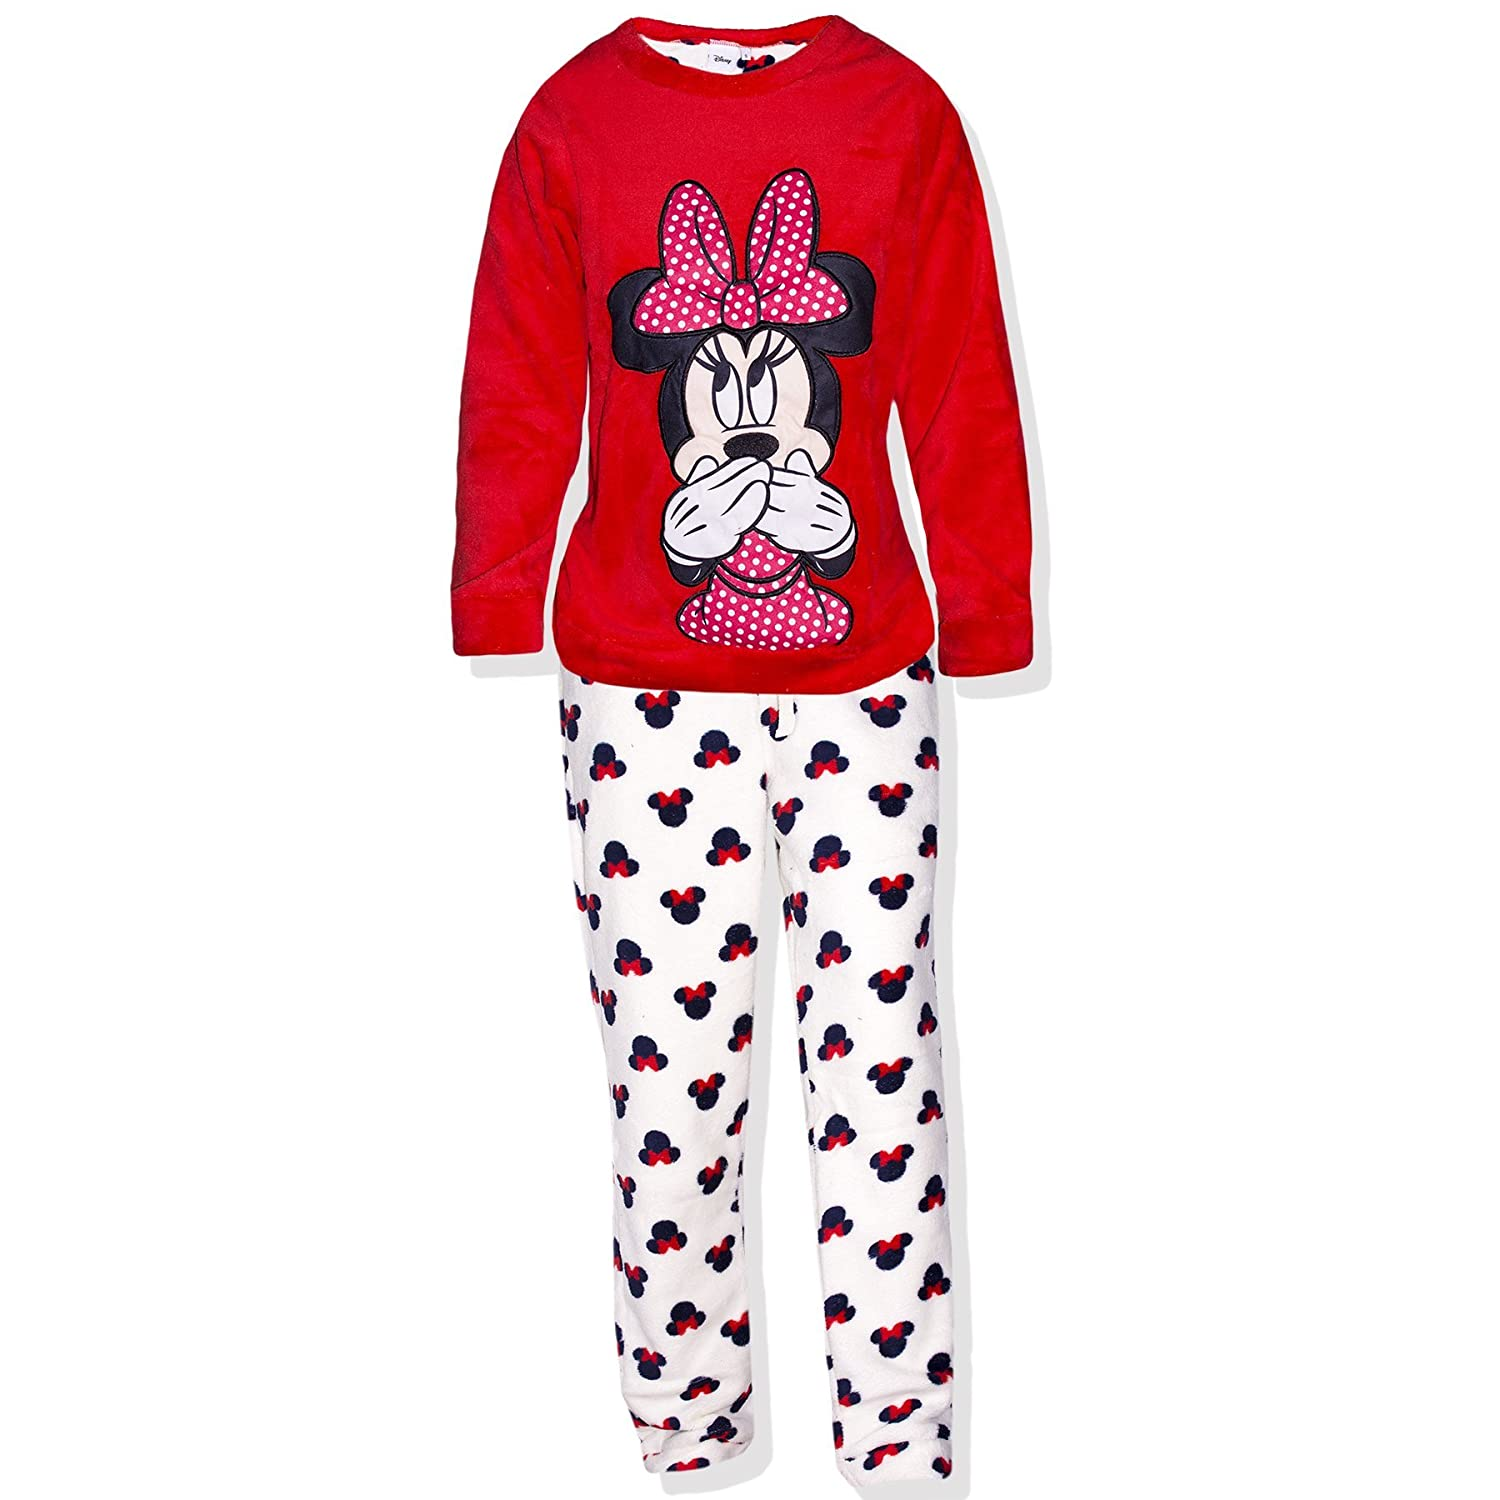 Disney Official Minnie Mouse Character Cartoon Women's Pyjamas Set Lounge Wear Coral Fleece - Sizes 8, 10, 12, 14